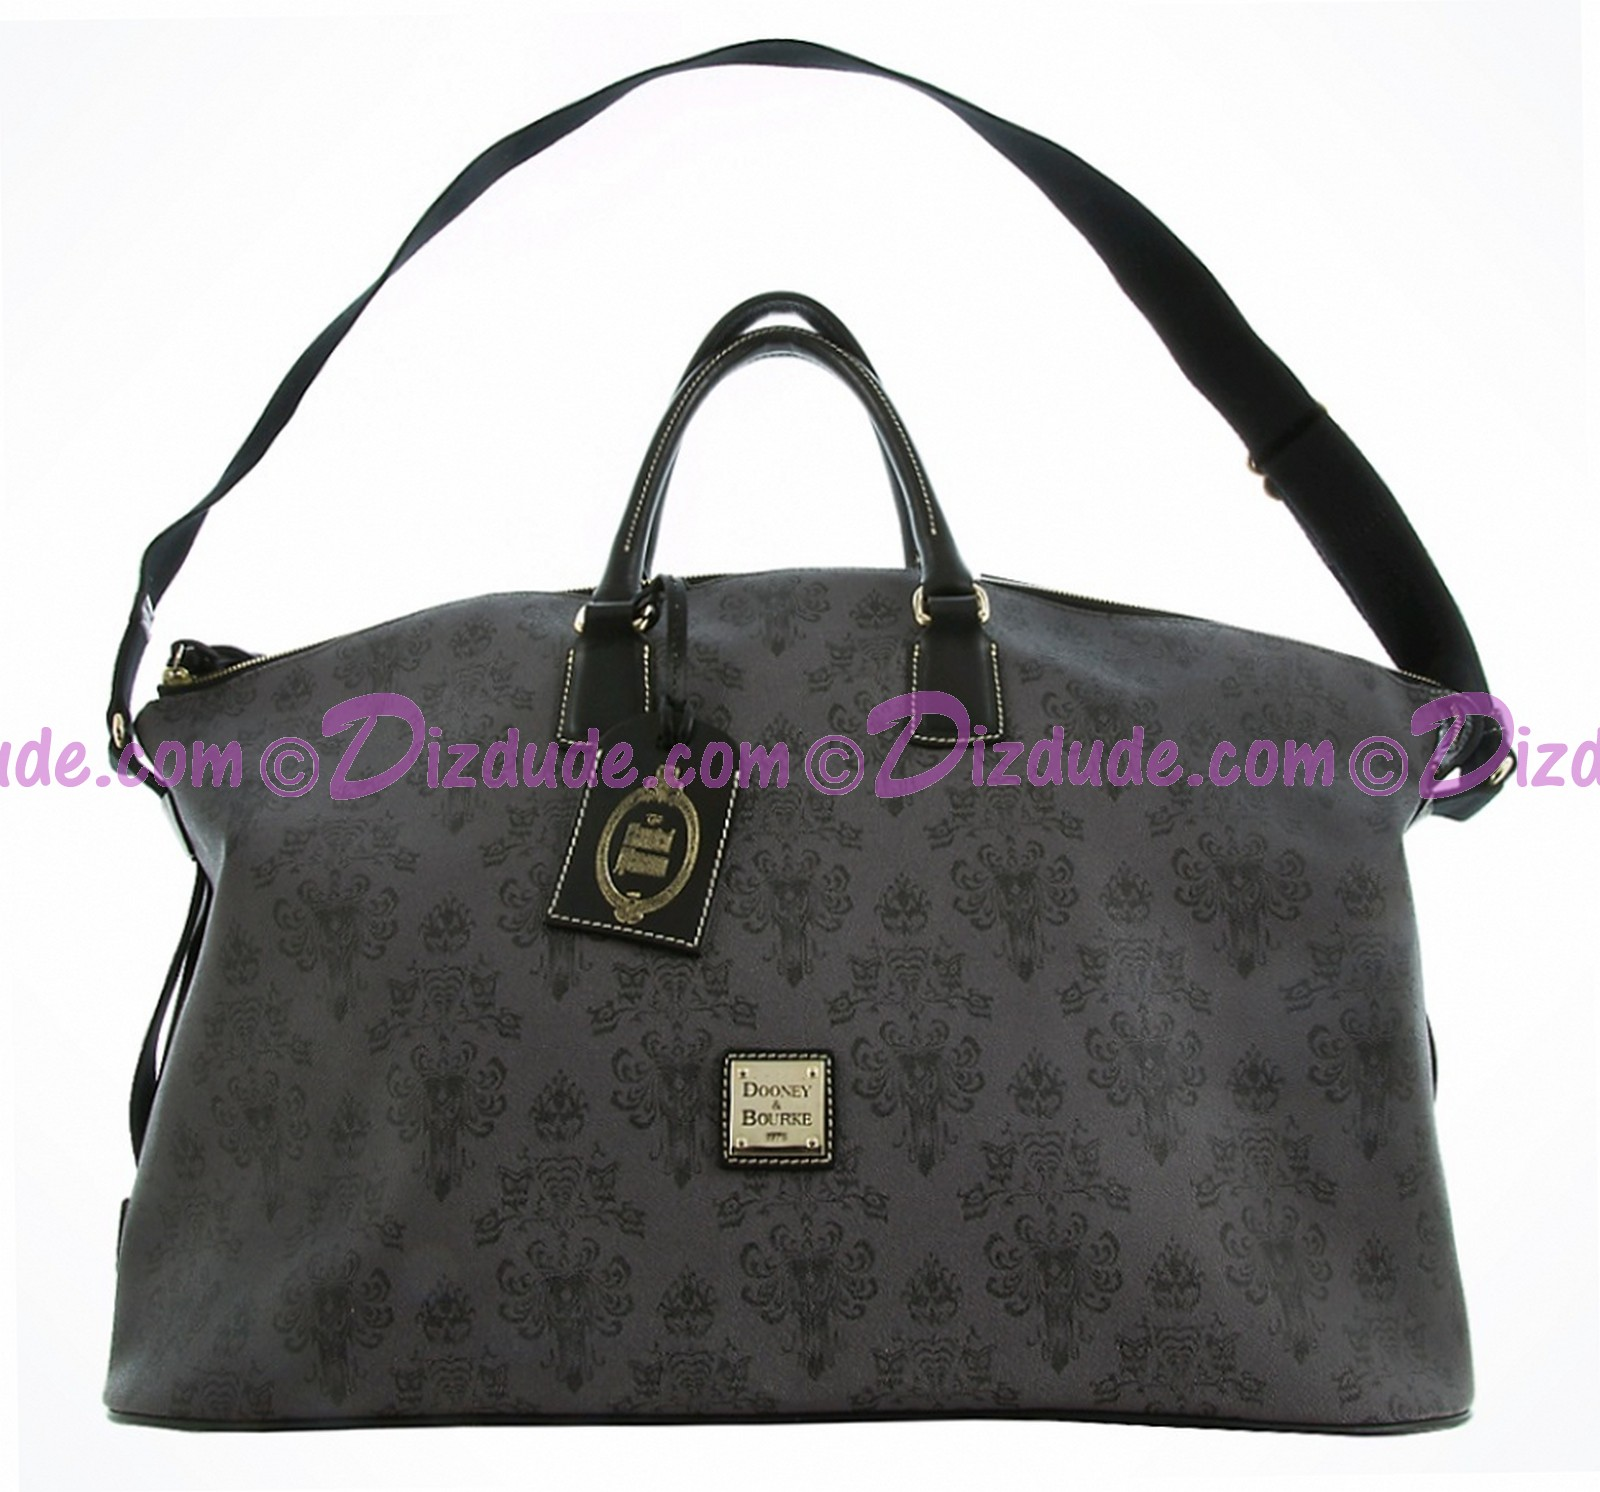 Dooney & Bourke - Disney Haunted Mansion Wallpaper Weekender Duffle Bag © Dizdude.com